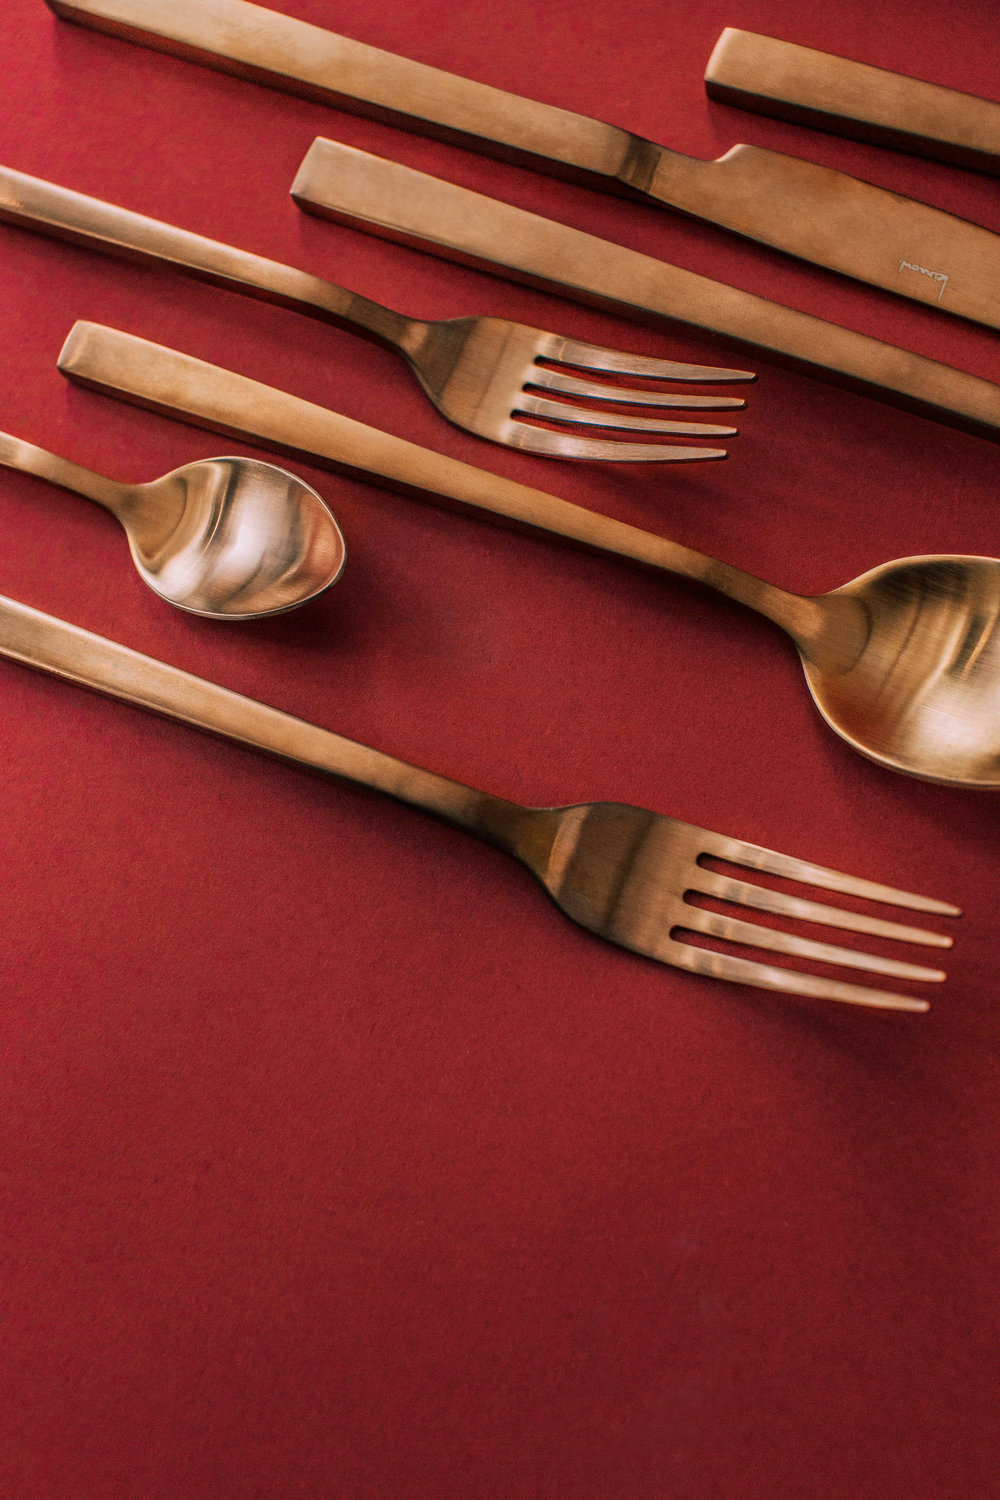 Featured: Kinnow Cuprum Cutlery Set